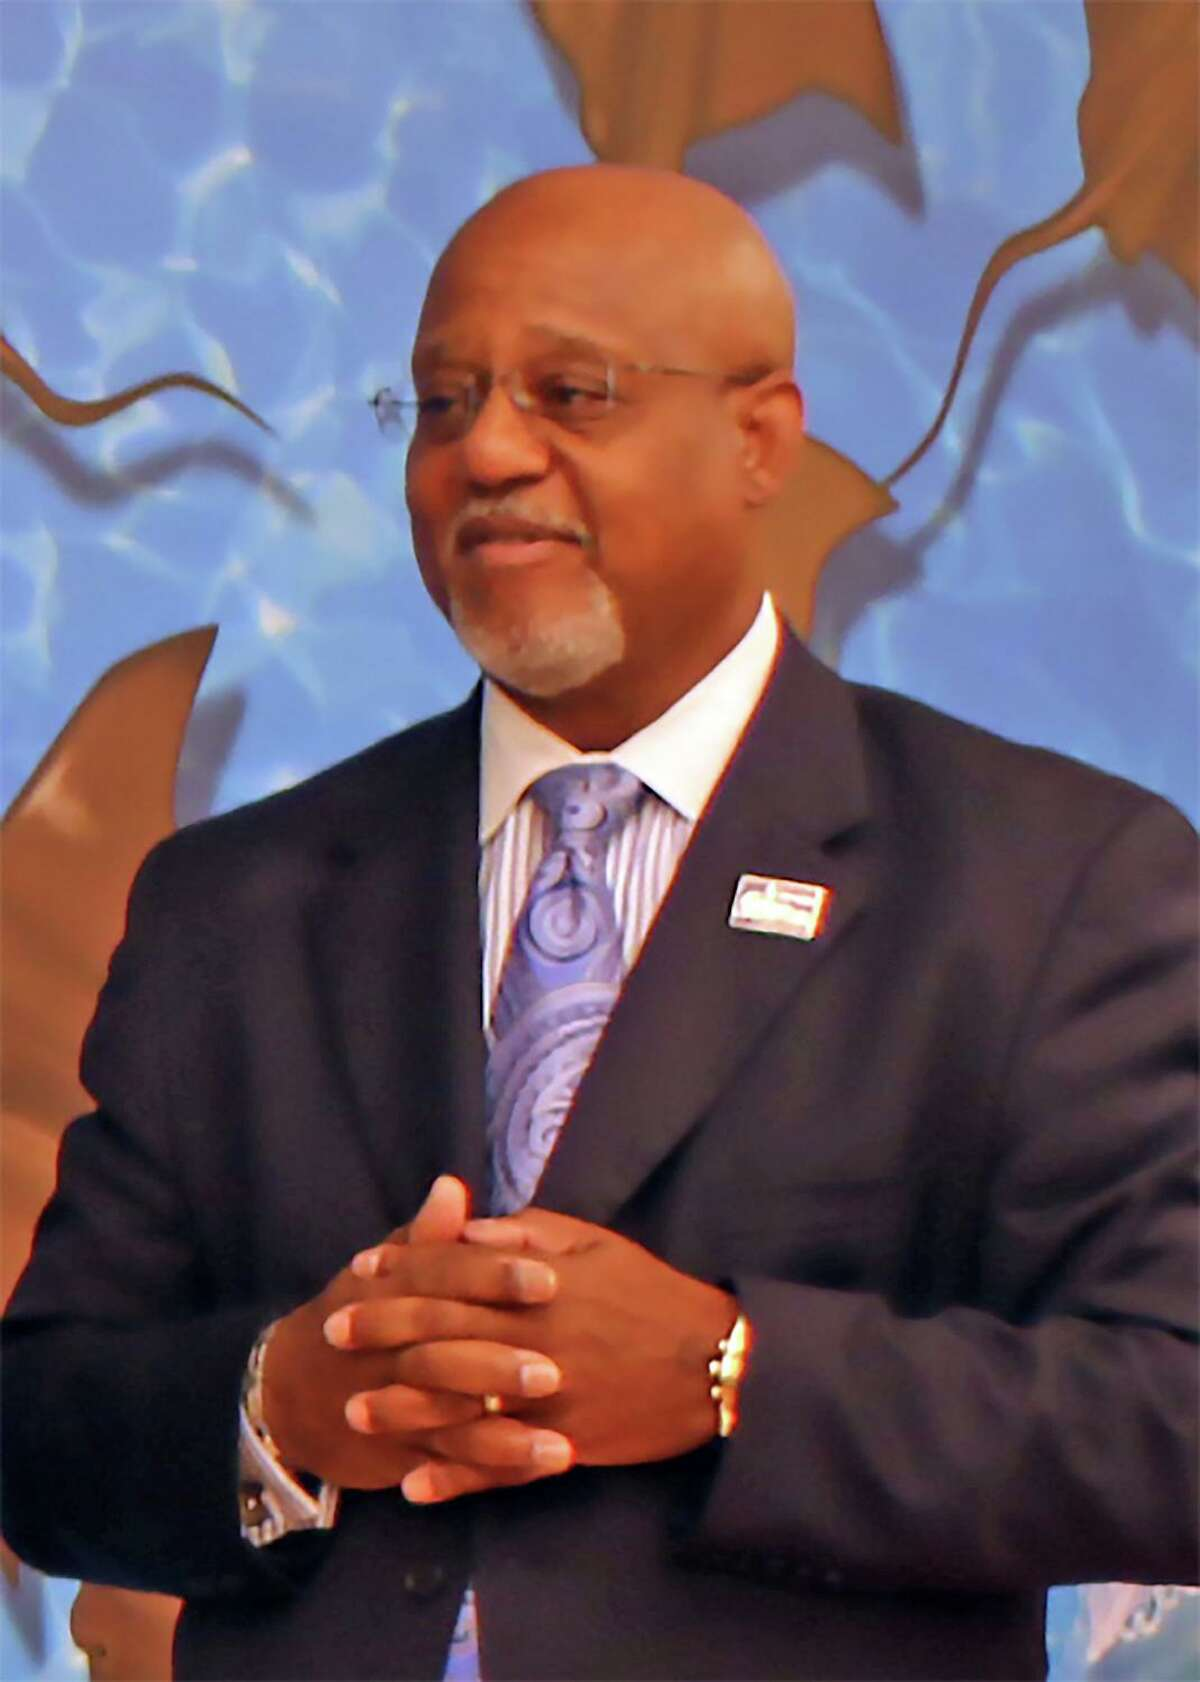 NORWALK, CT - The Rev. Dr. Lindsay E. Curtis of Grace Baptist Church in Norwalk is one of four new members of The Maritime Aquarium at Norwalk's Board of Trustees.